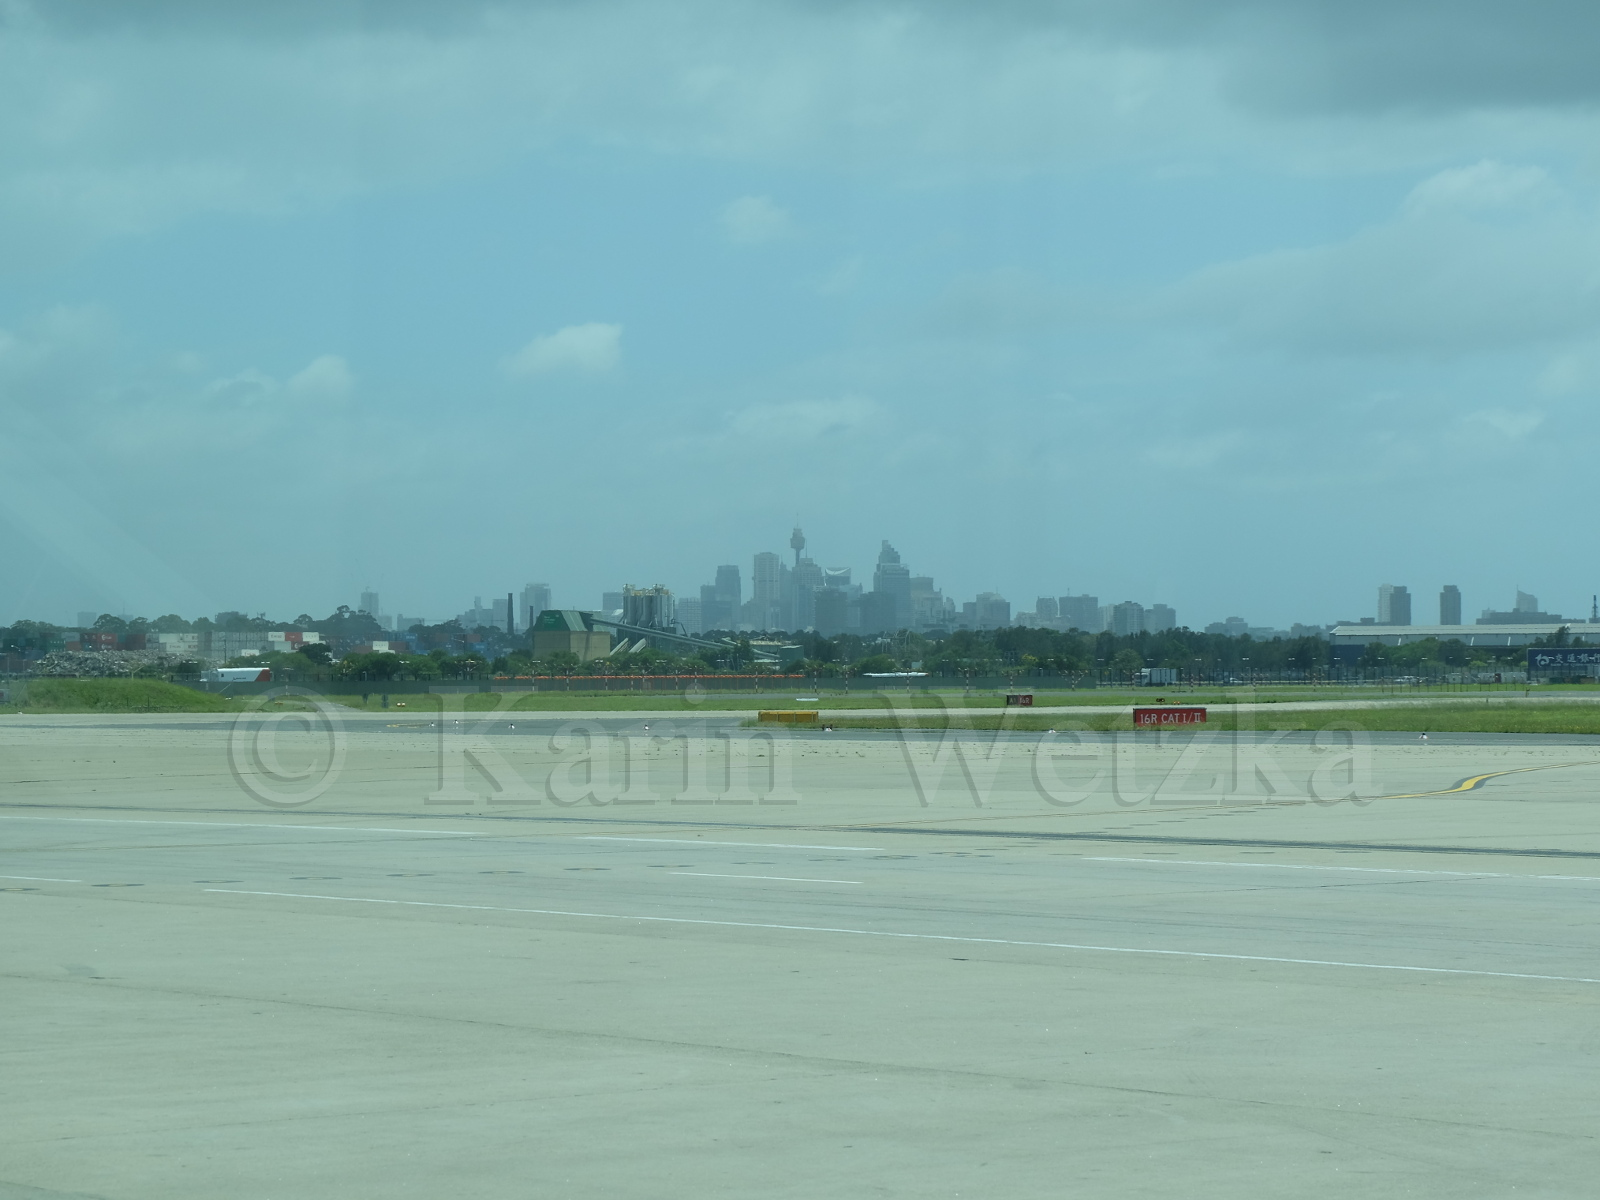 This is Sydney, seen through the windows of the airport shuttle bus.